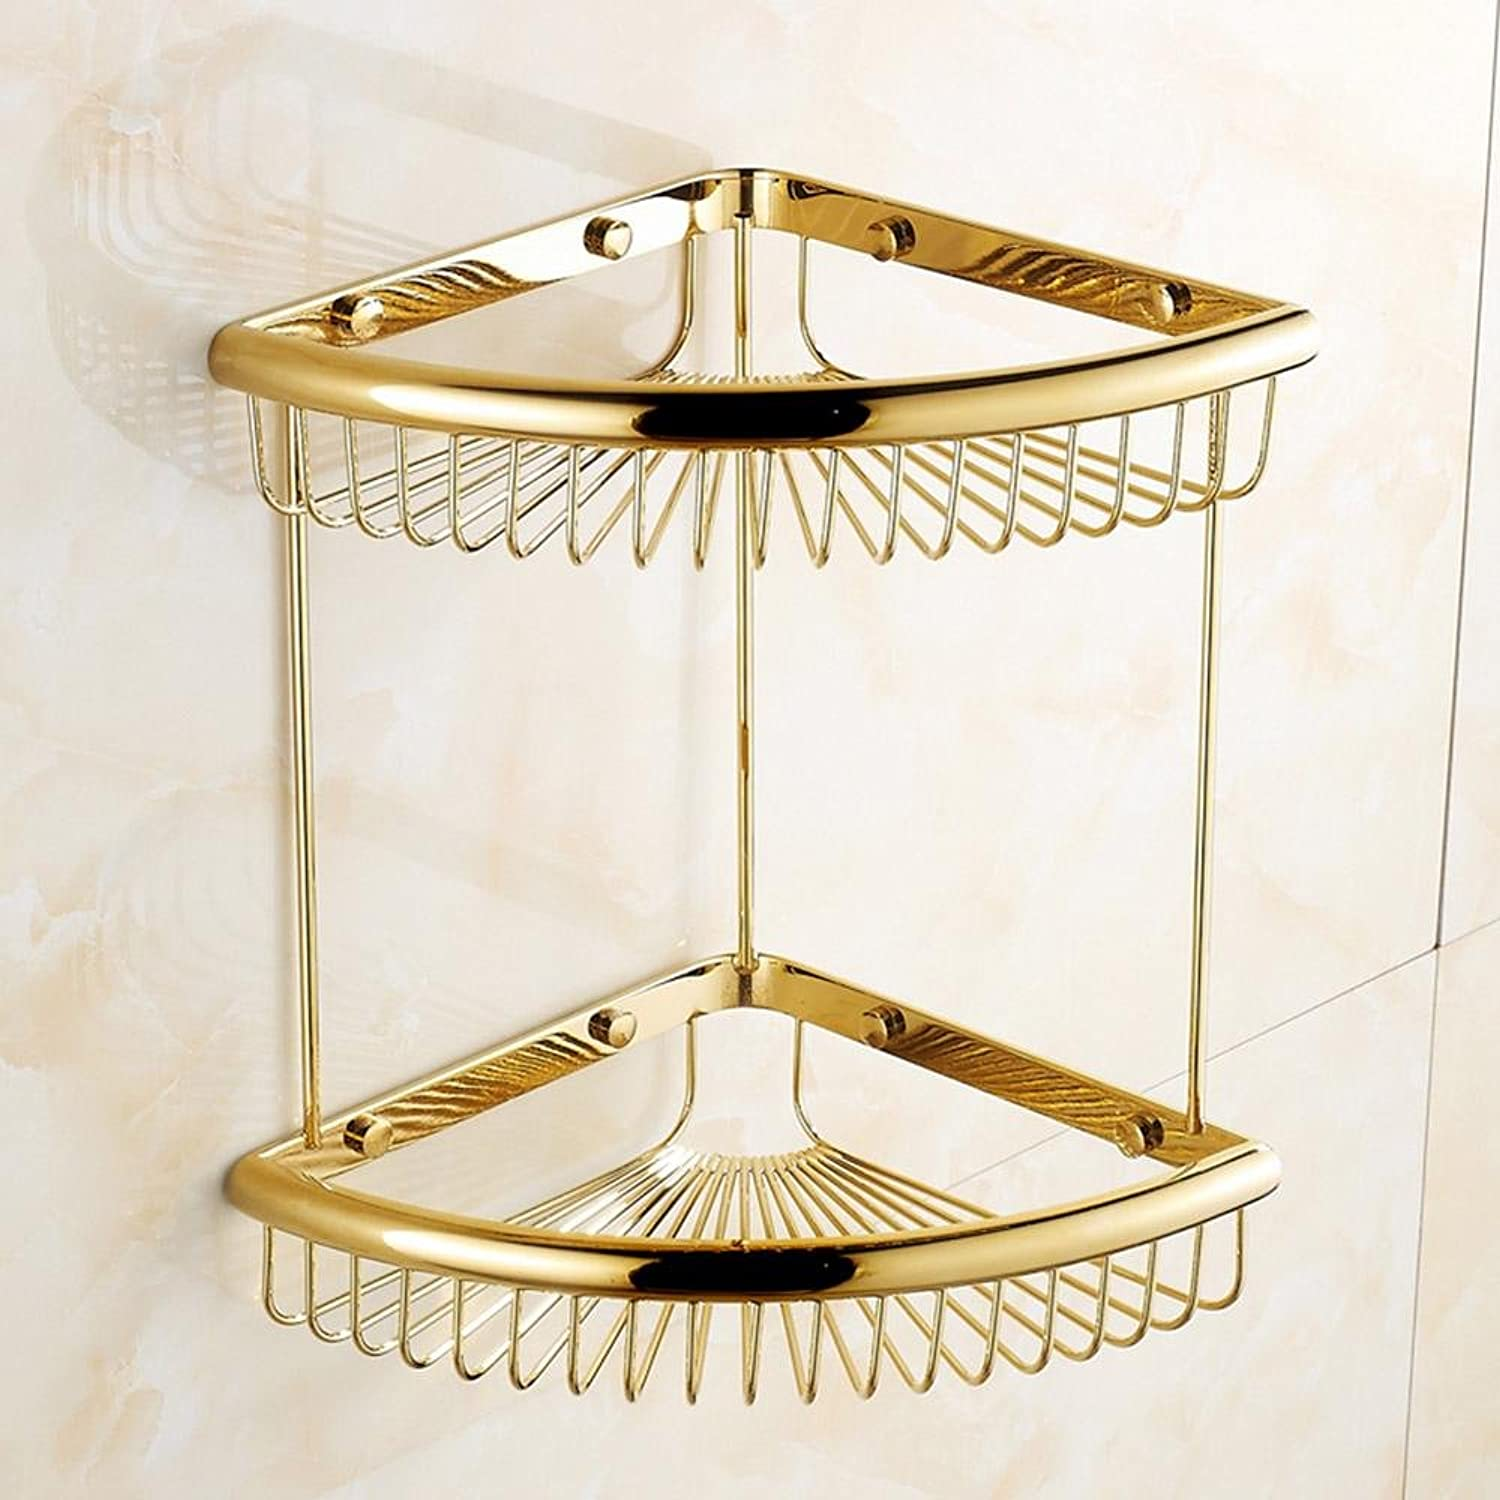 XUEXIN Full Copper gold Shelf Rack   Basket Single Layer Double Layer Antique pink gold gold-plated Basket Retro Bathroom Angle Rack , double